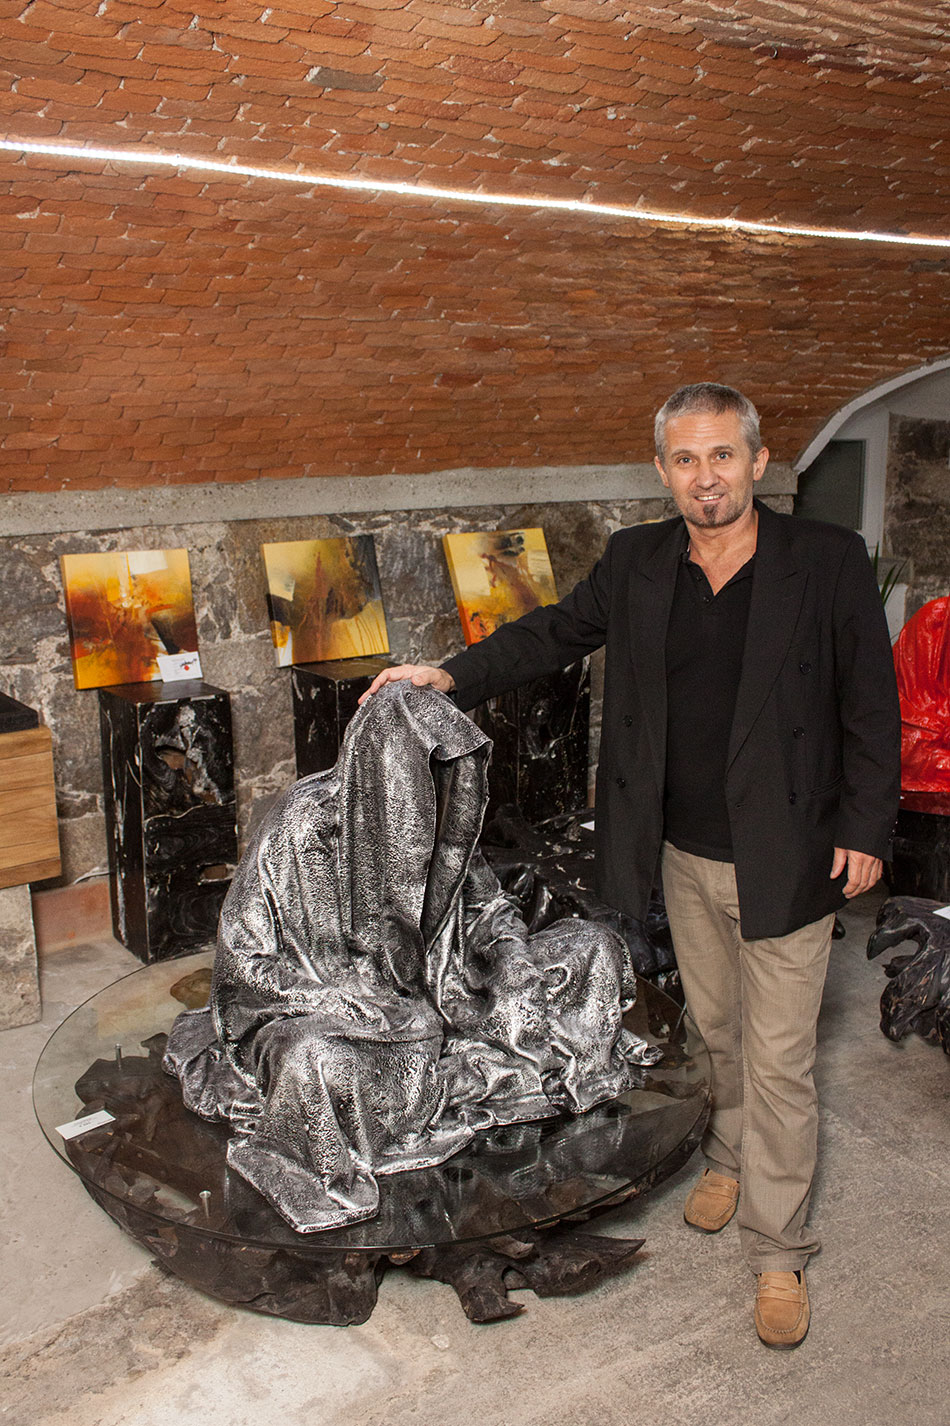 mobile-galerie-gall-toko06-linz-25er-turm-guardians-of-time-manfred-kielnhofer-contemporary-fine-art-design-sculpture-2666